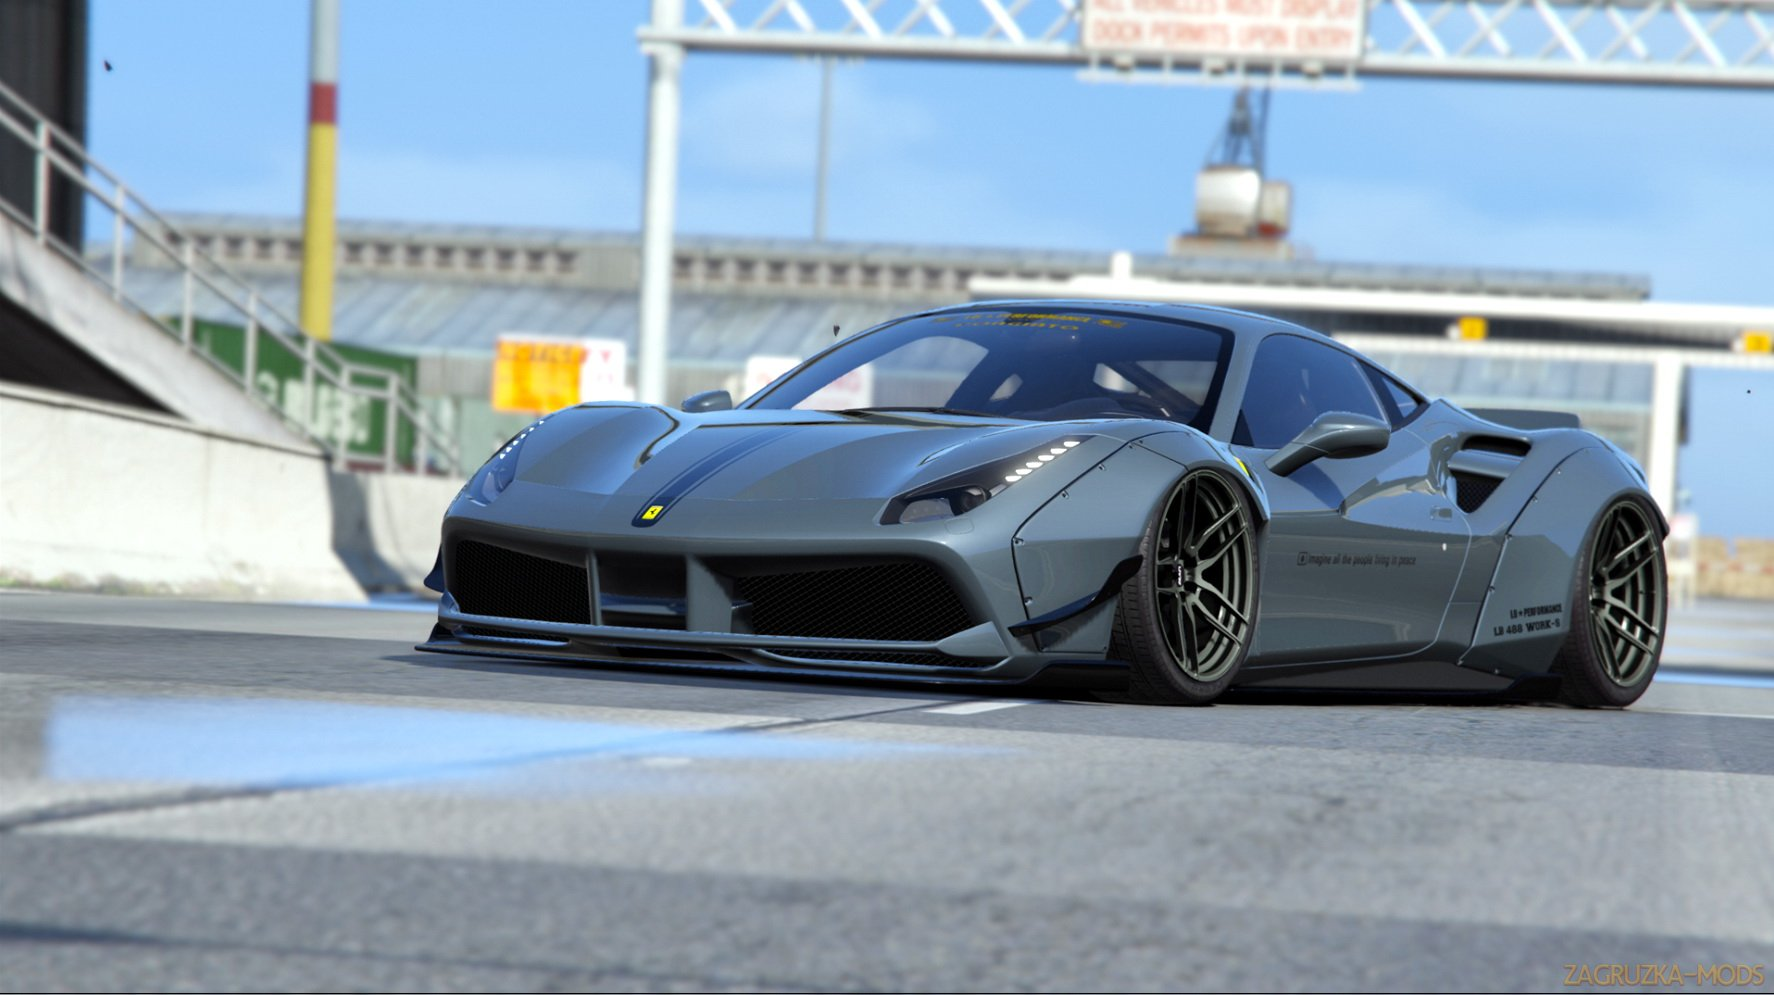 Ferrari 488 GTB 2015 LB Works v1.0 for GTA 5